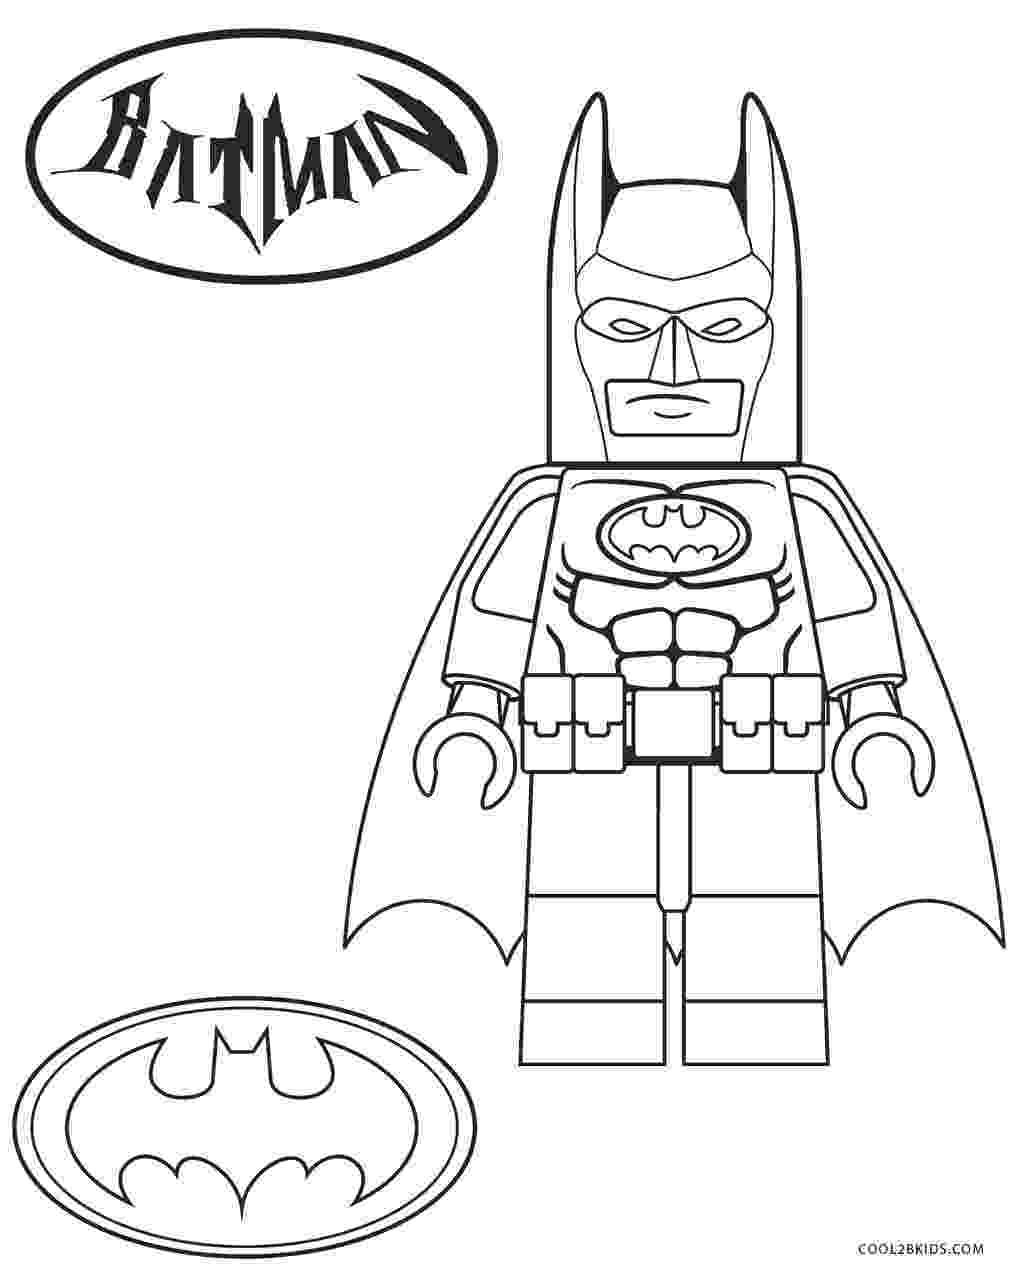 lego pictures to print and colour lego star wars coloring pages best coloring pages for kids lego and pictures print to colour